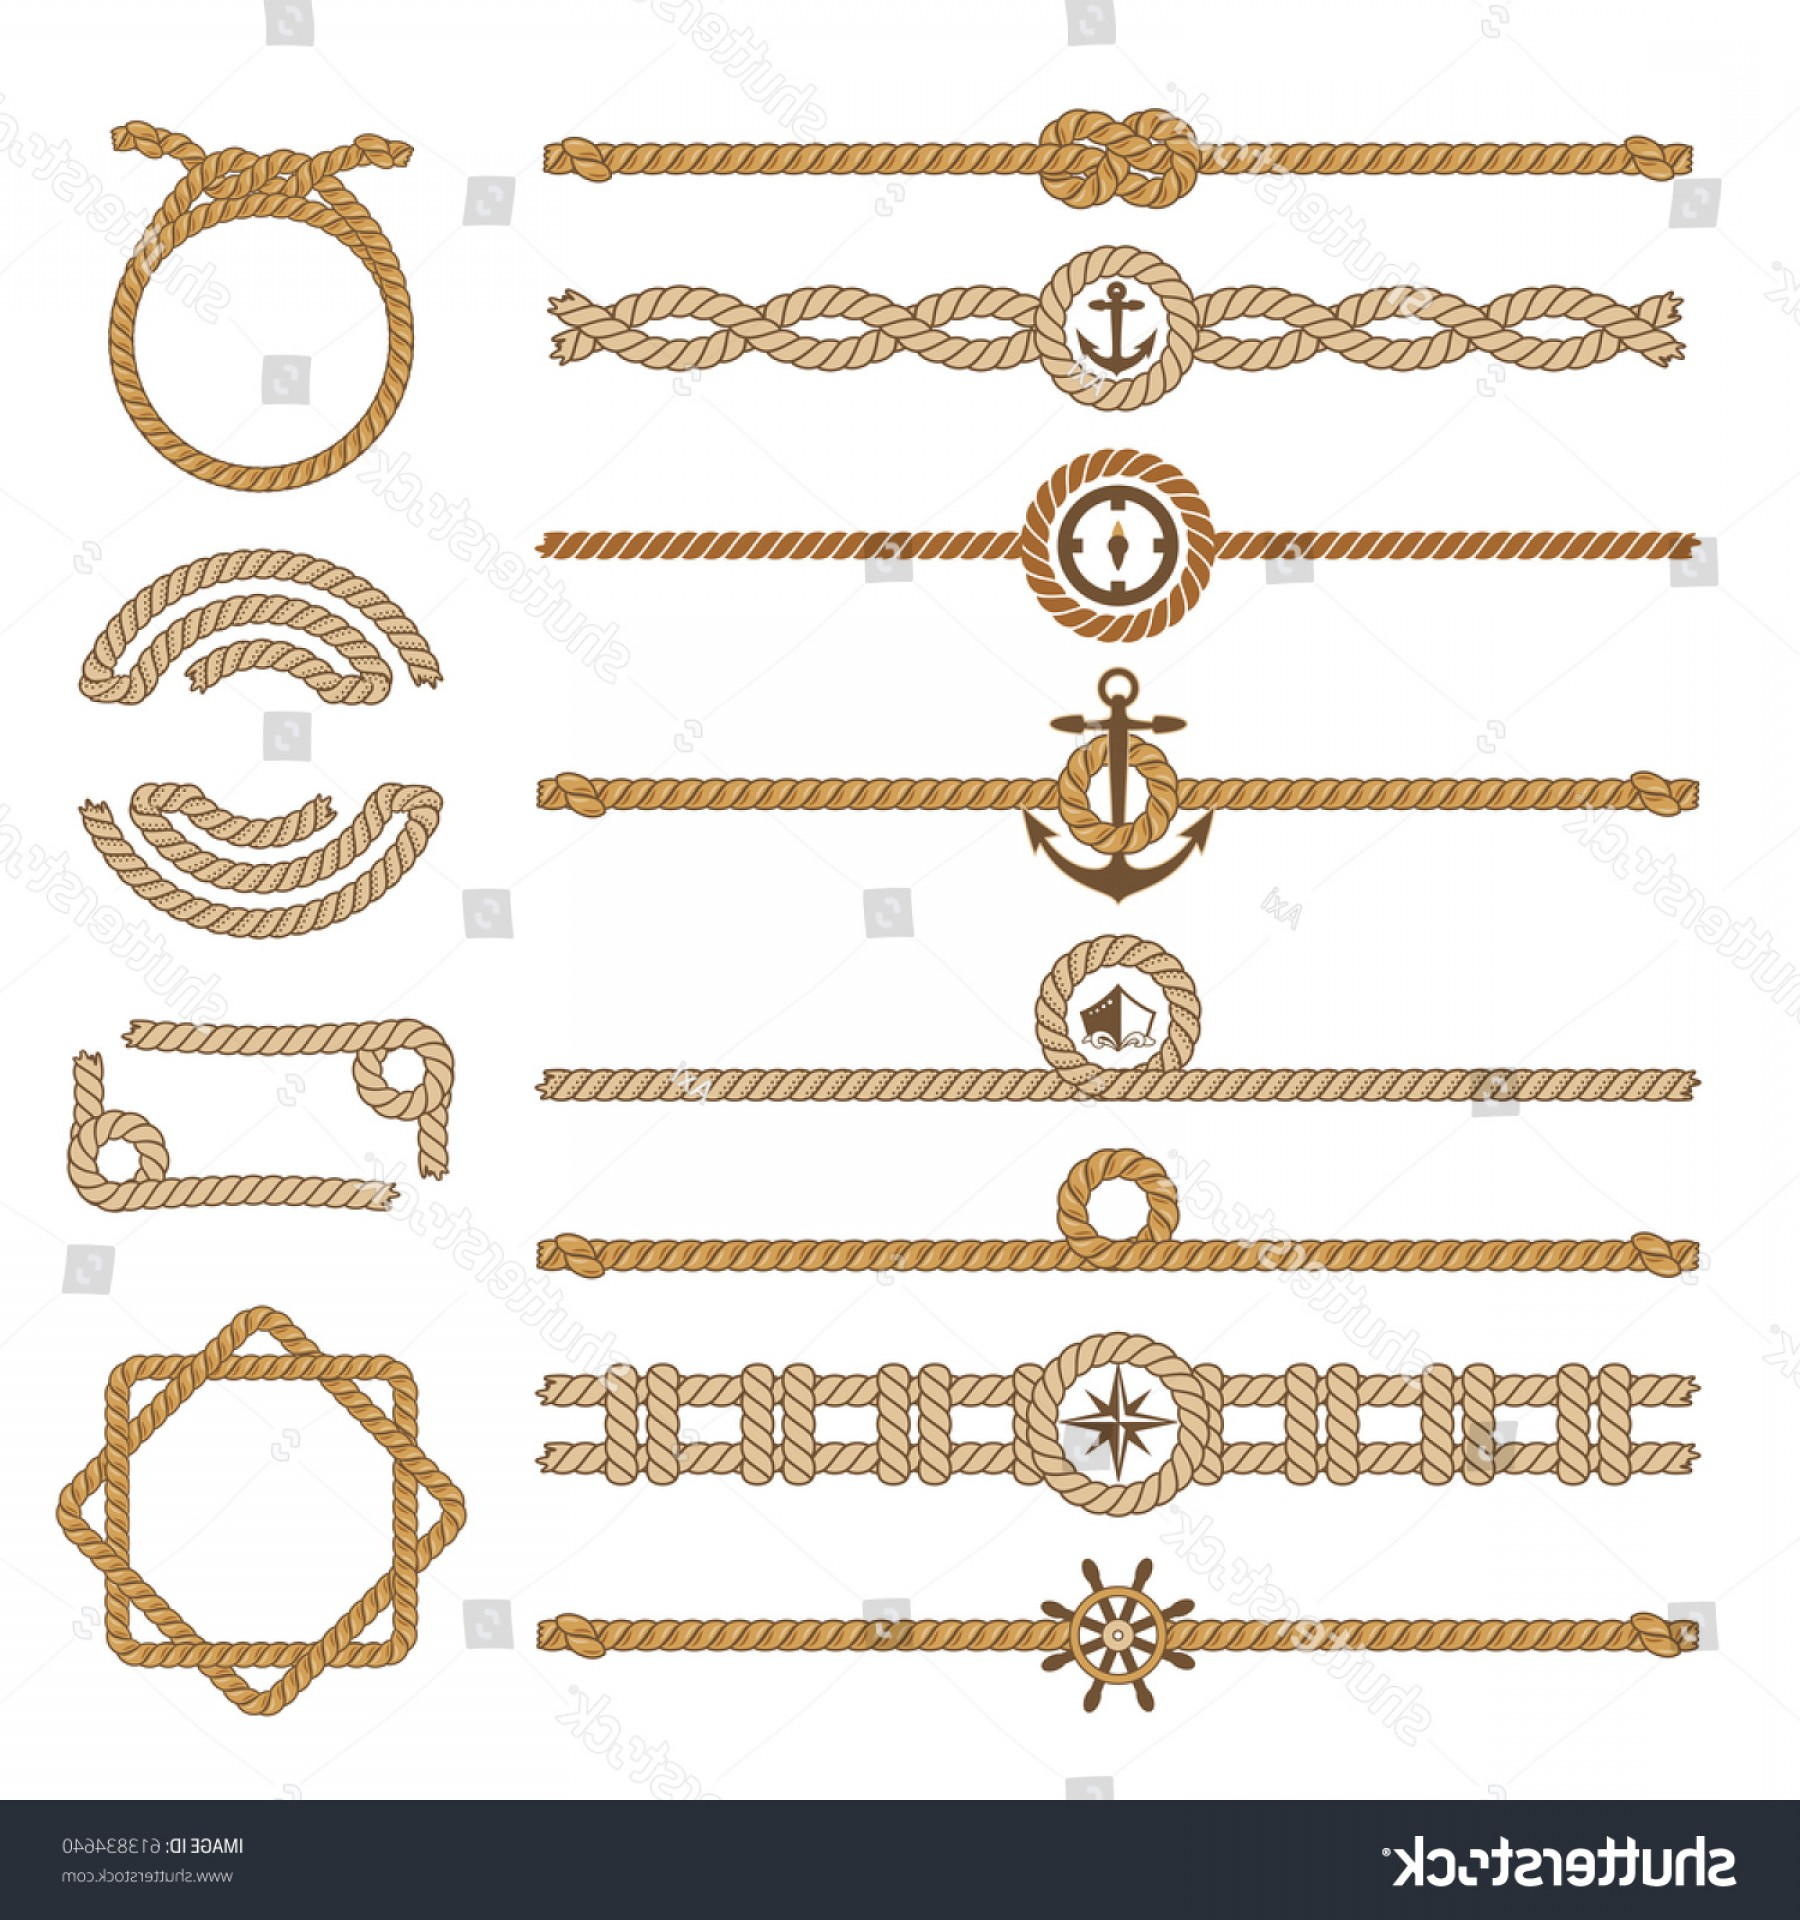 Design Vector Image Of Rope: Nautical Vintage Rope Vector Dividers Elements